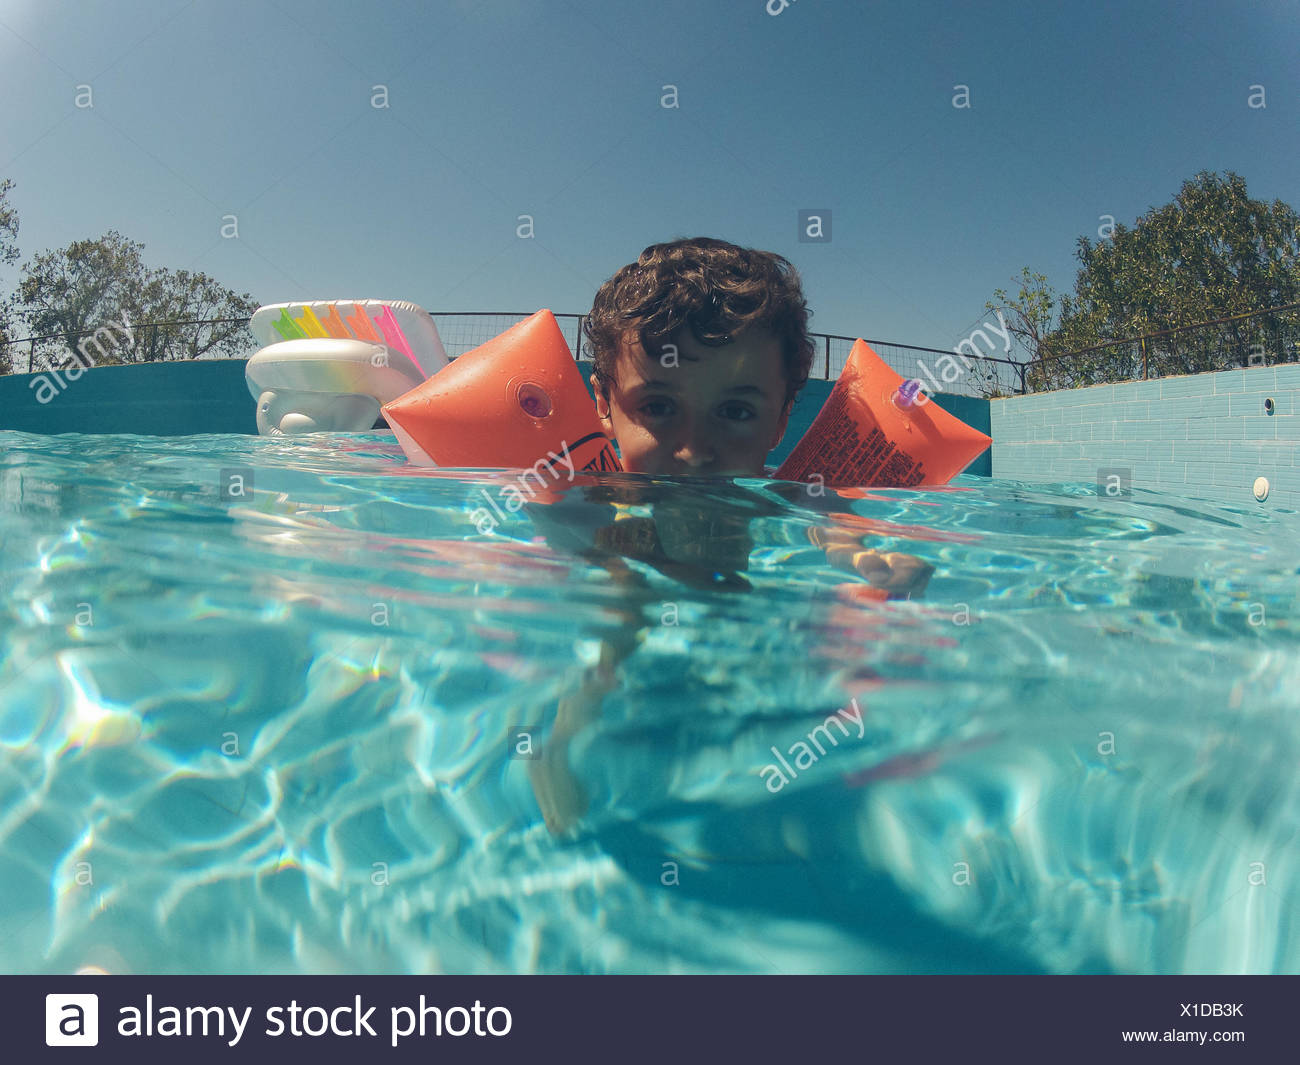 Portrait Of Boy Swimming In Pool With Water Wings - Stock Image